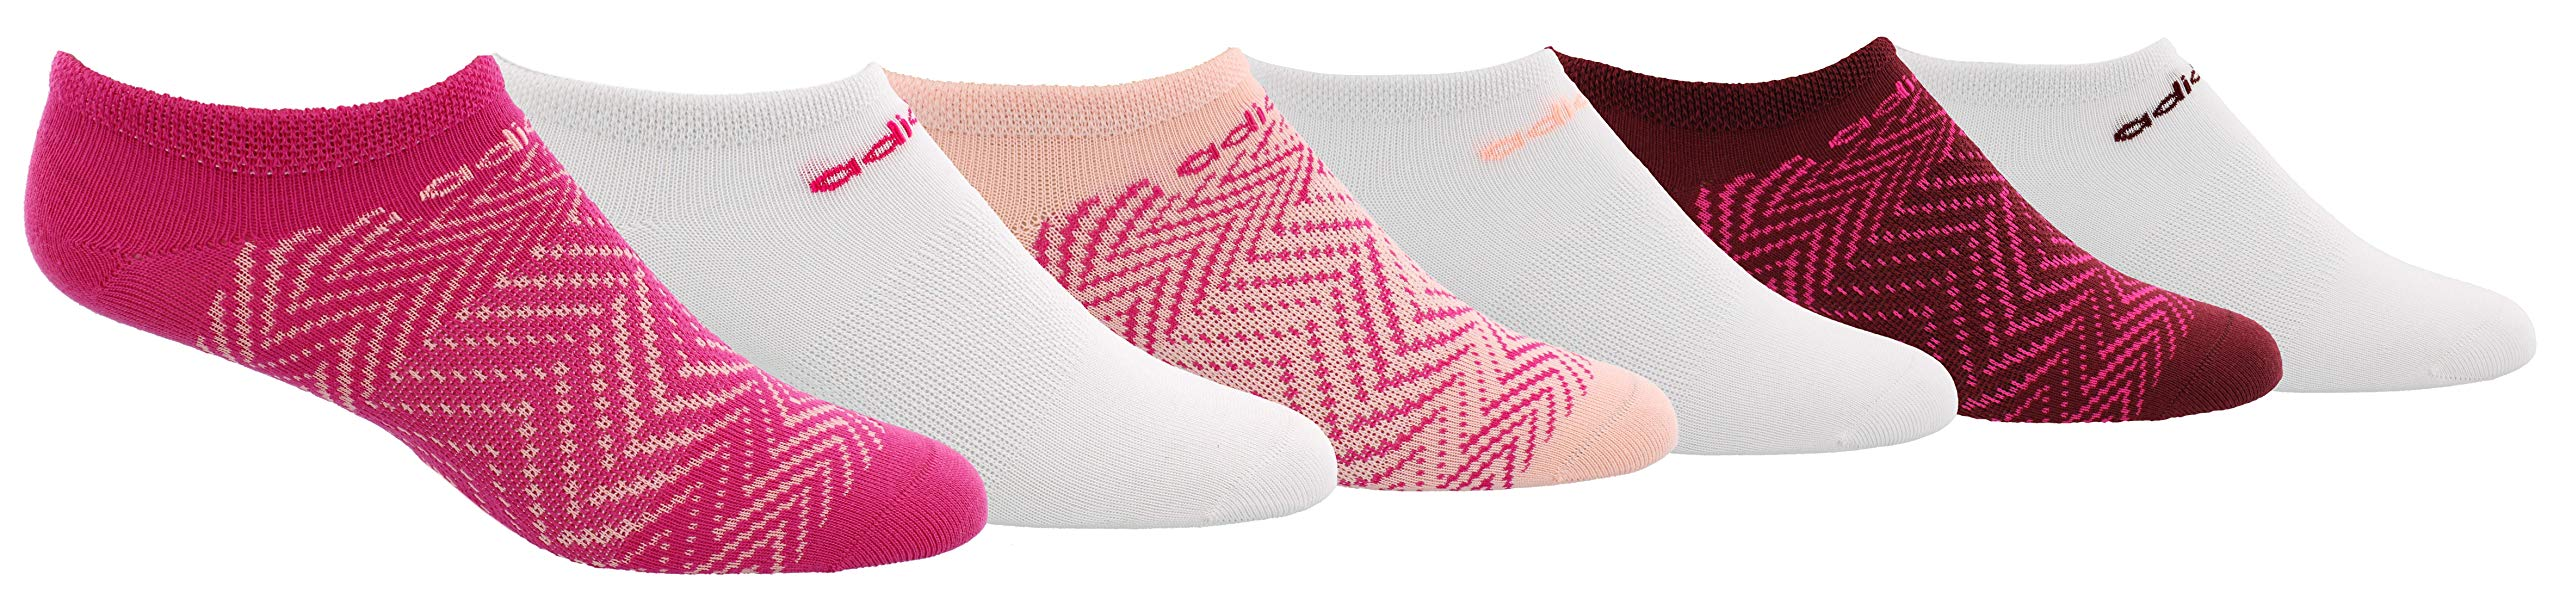 adidas Youth Kids-Girl's Superlite No Show Socks (6 Pair), Shock Pink/ Clear Orange/ Noble Maroon, Large, (Shoe Size 3Y-9) by adidas